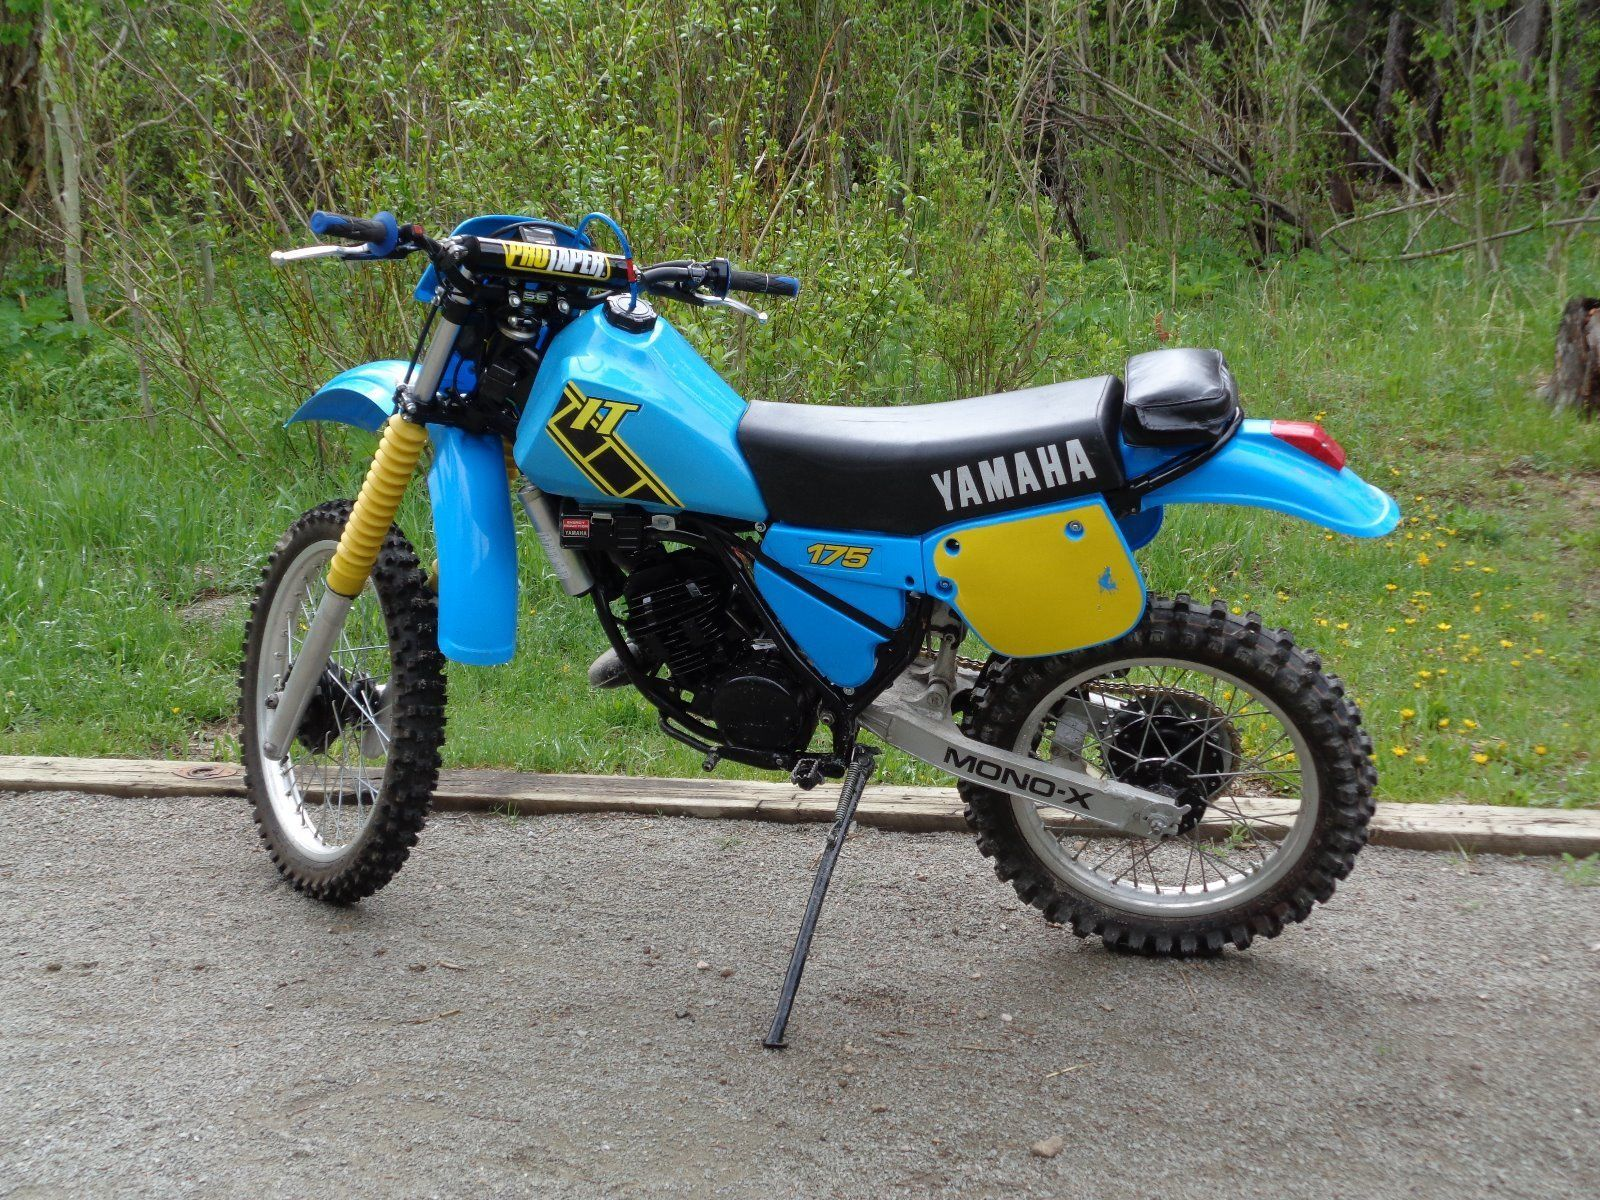 83 yamaha it175 vintage dirt bike dirt biking. Black Bedroom Furniture Sets. Home Design Ideas